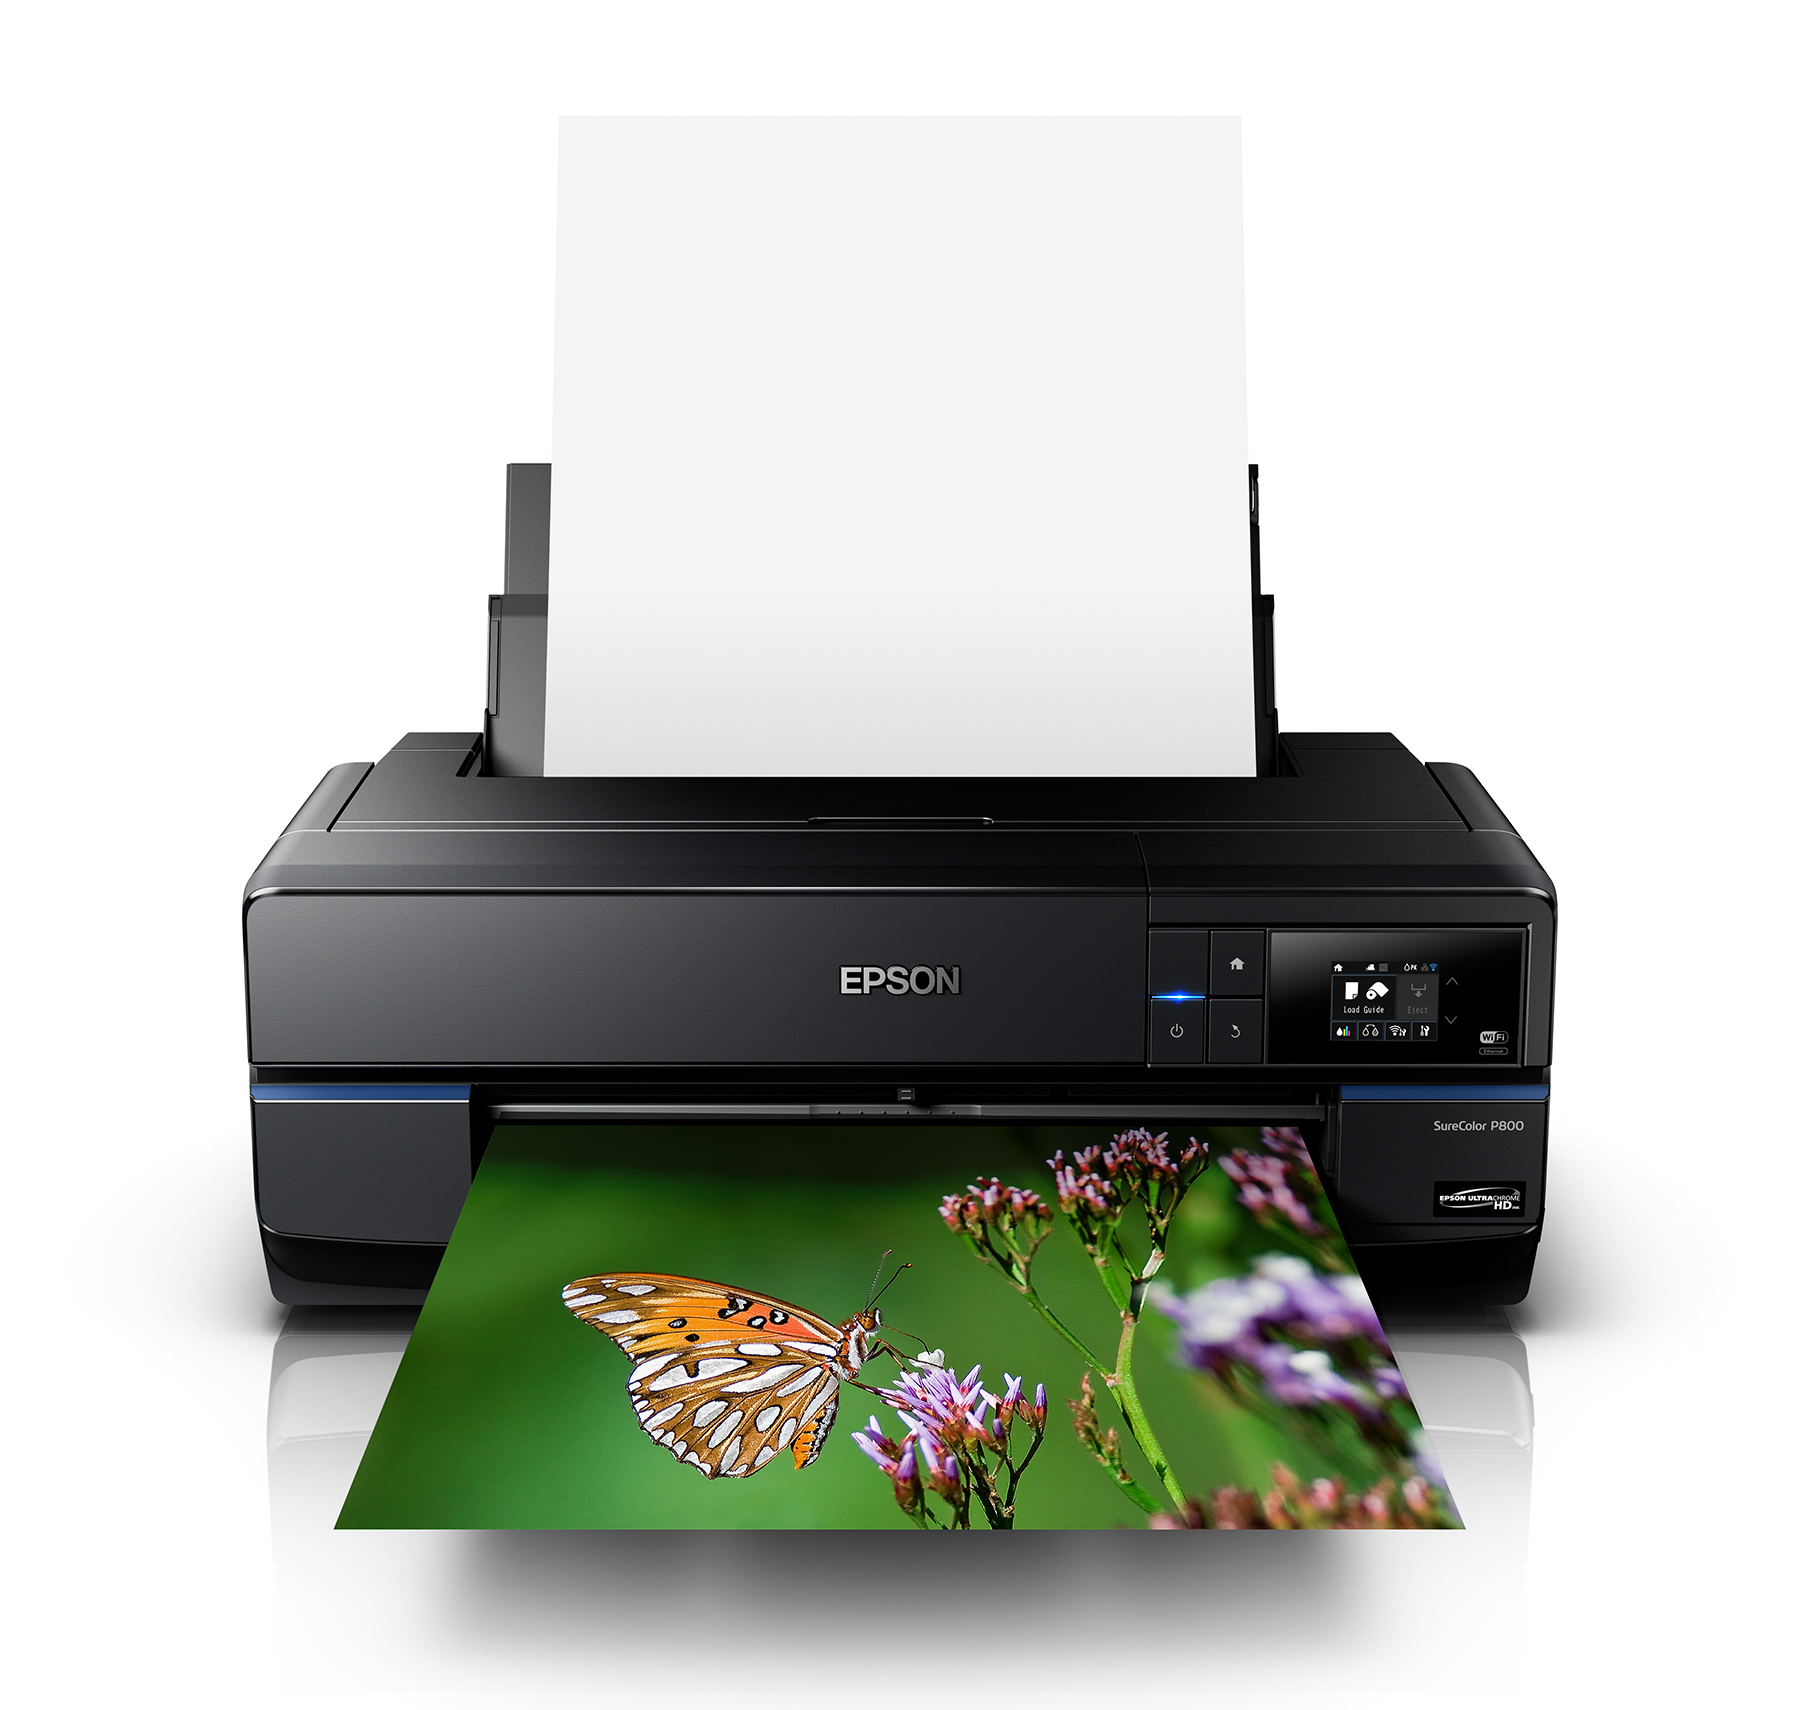 Epson SureColor P800 Front View with Sample image